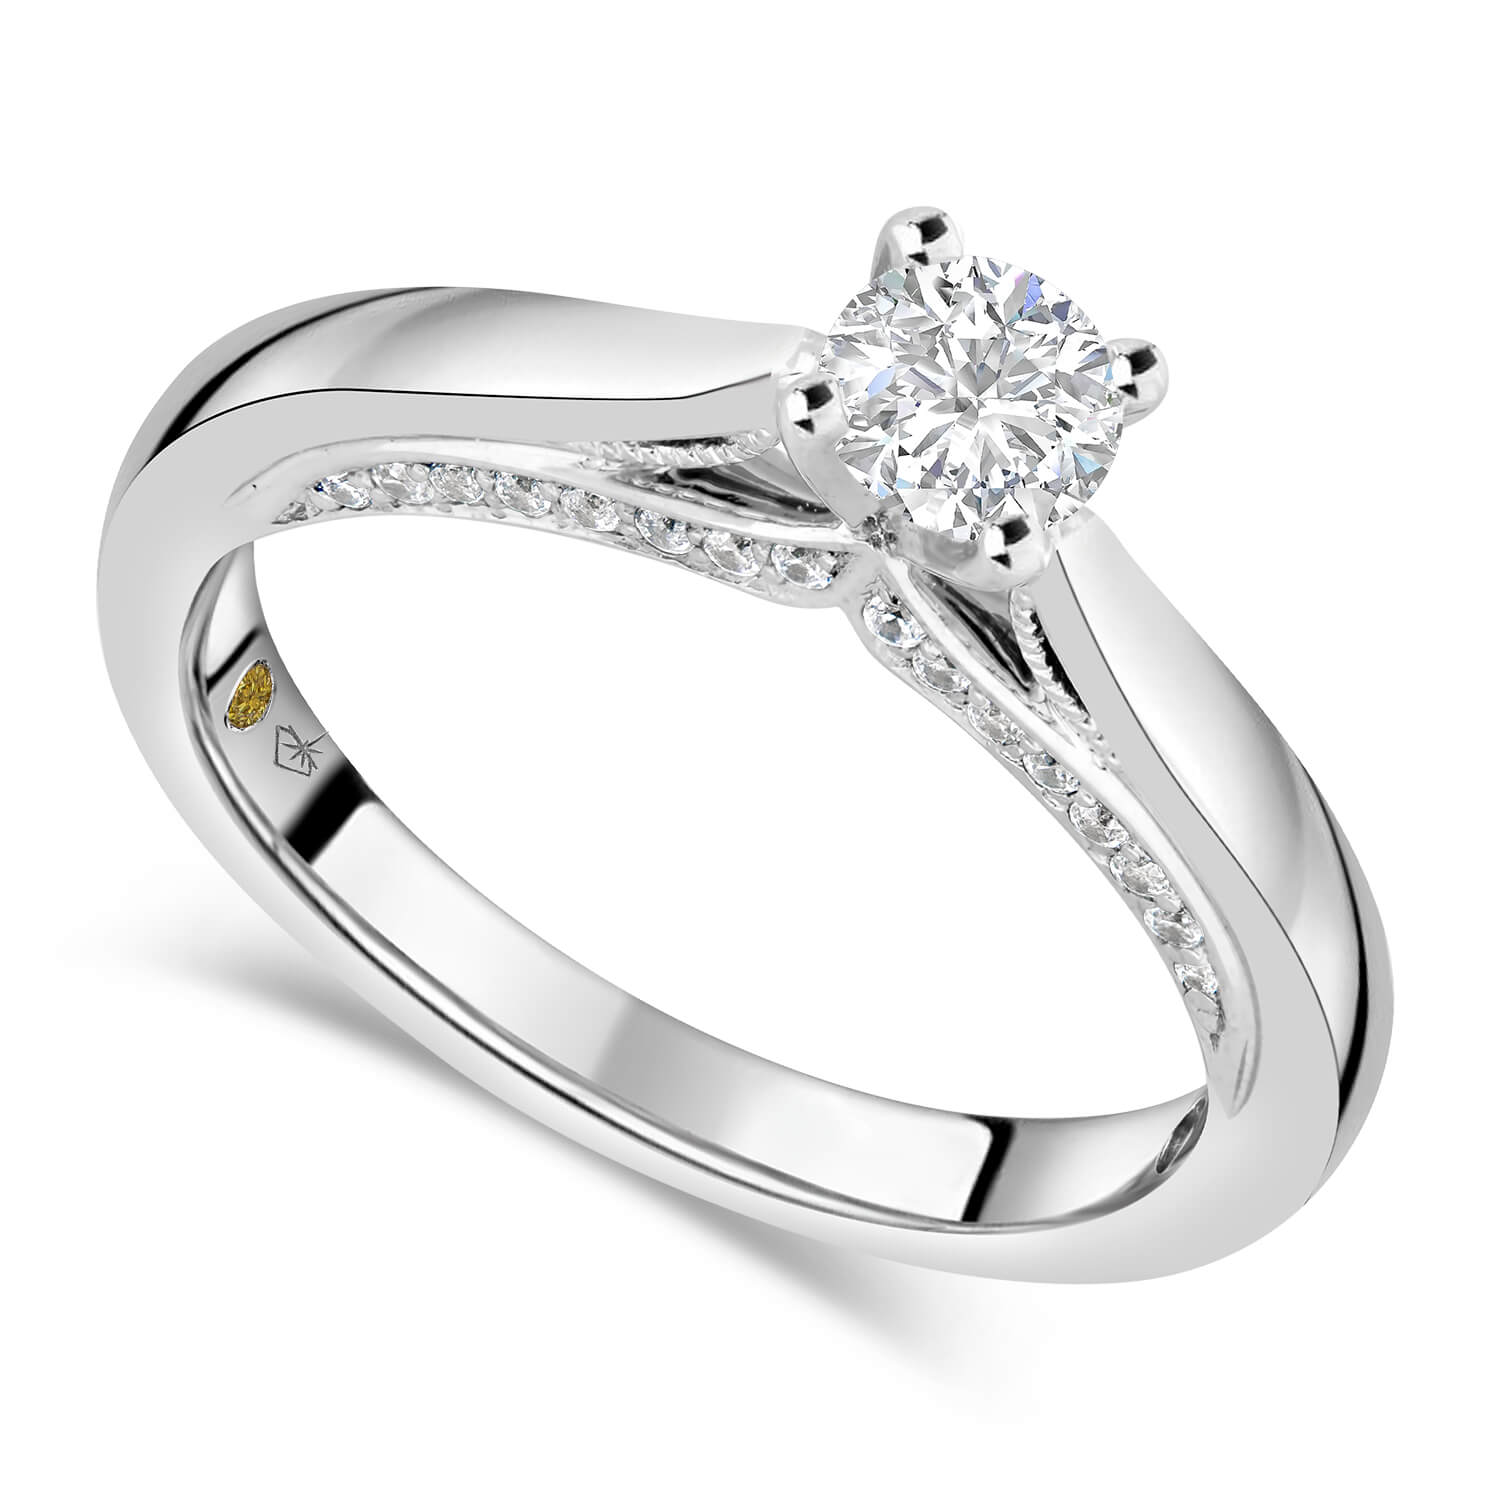 Northern Star 0.55ct Diamond 18ct White Gold Sides Ring